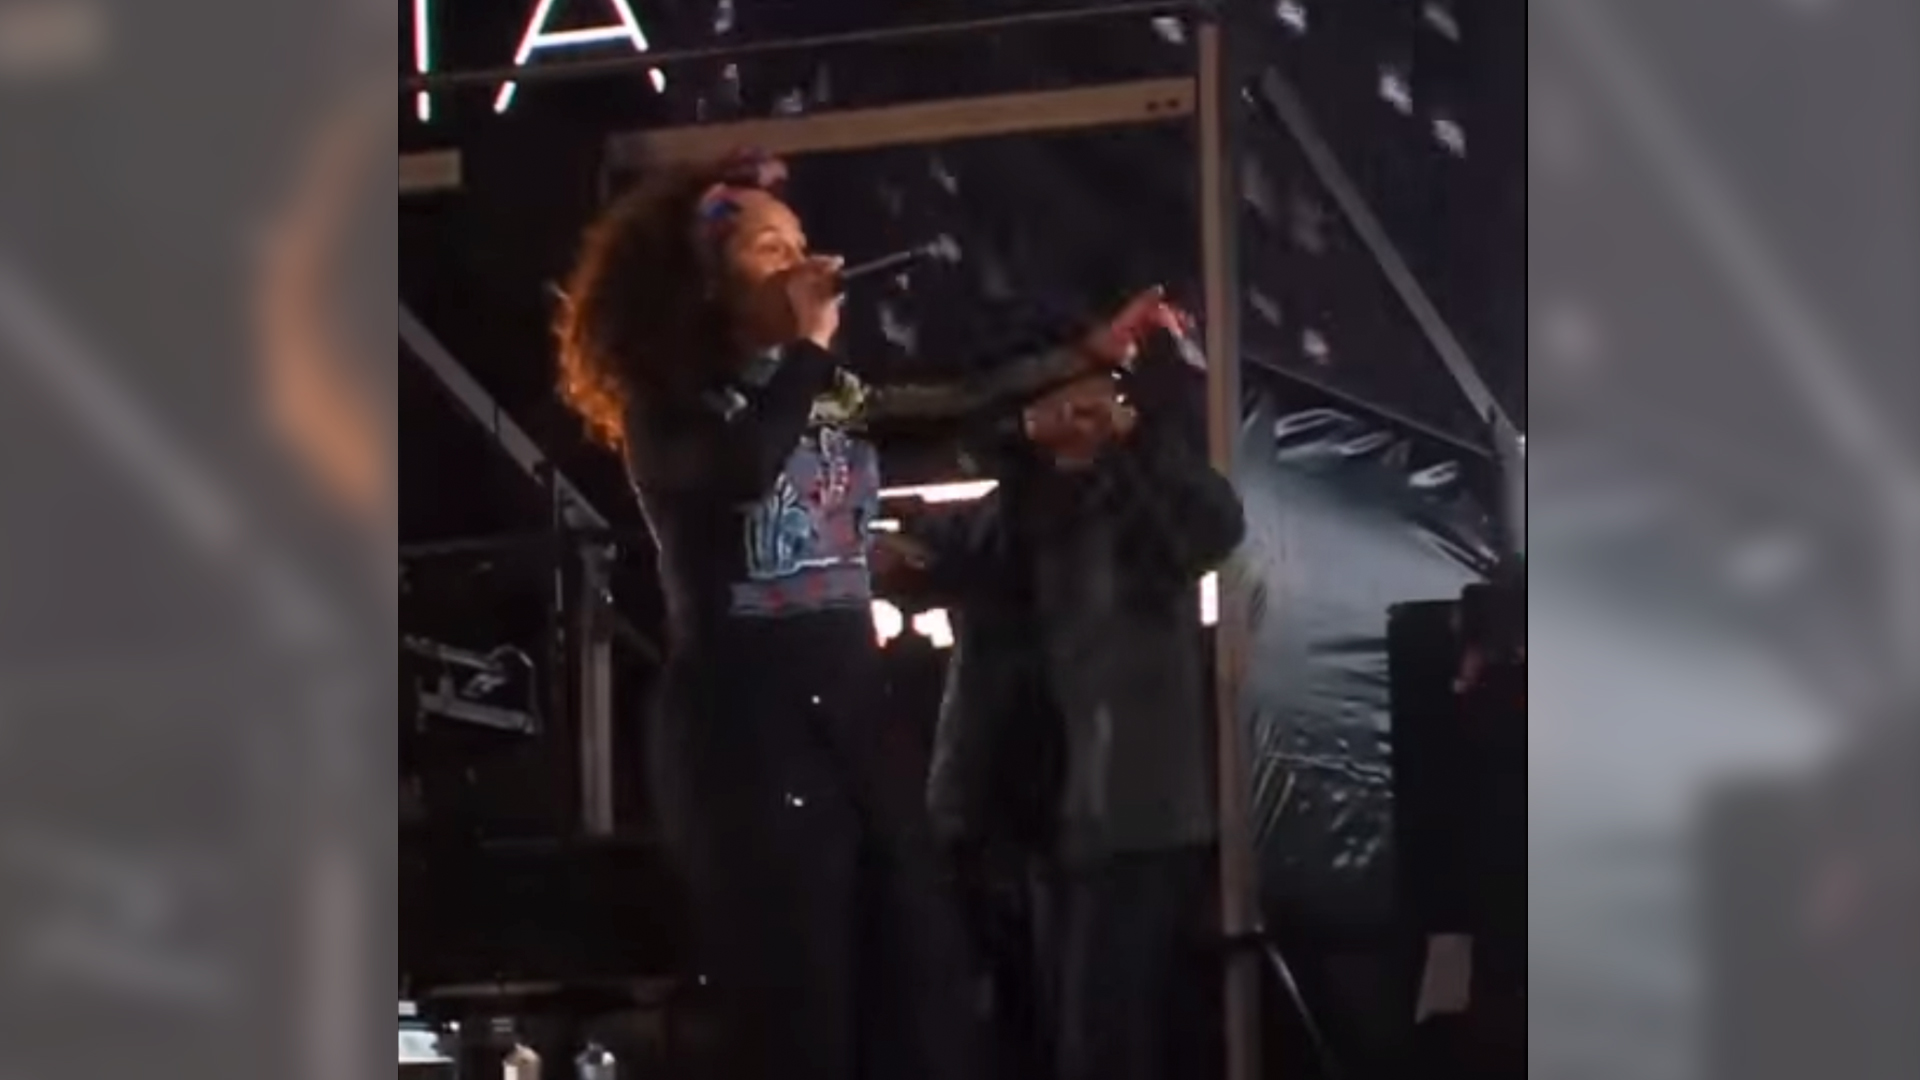 Alicia keys performs empire state of mind with jay z in times square alicia keys performs empire state of mind and other hits with jay z john mayer q tip questlove and nas to lead up to the release of her new album malvernweather Image collections